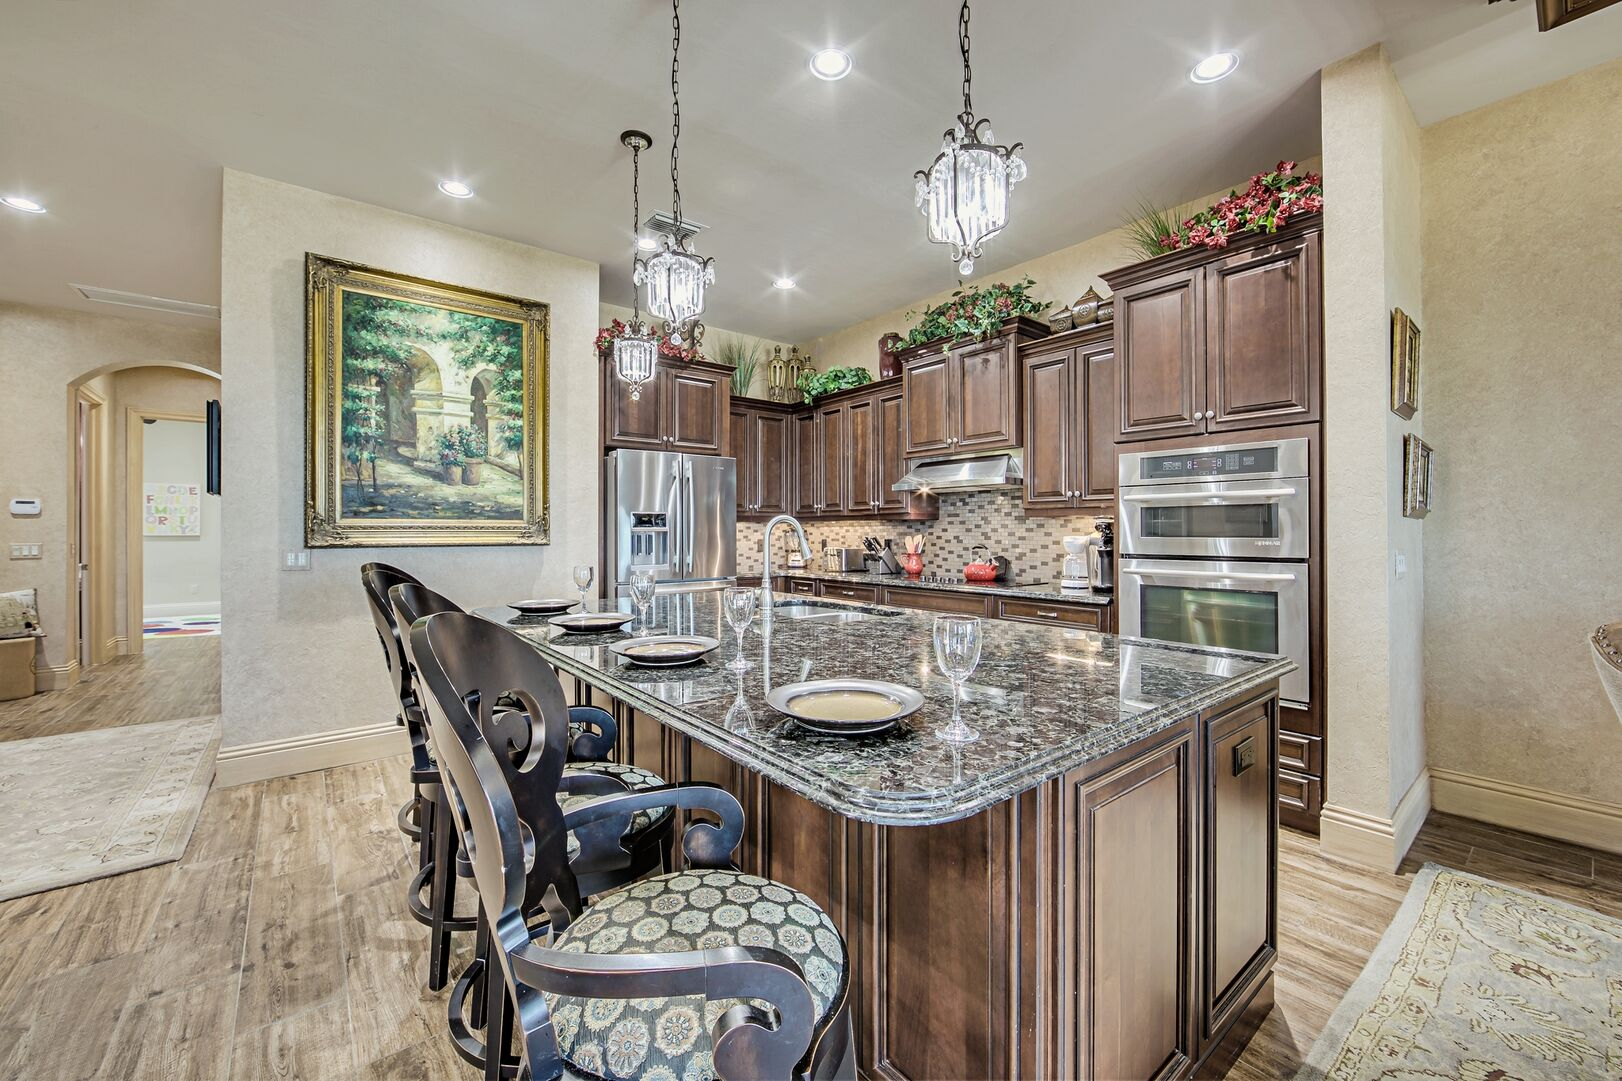 Kitchen with Island, High Chairs, Refrigerator, and Oven.